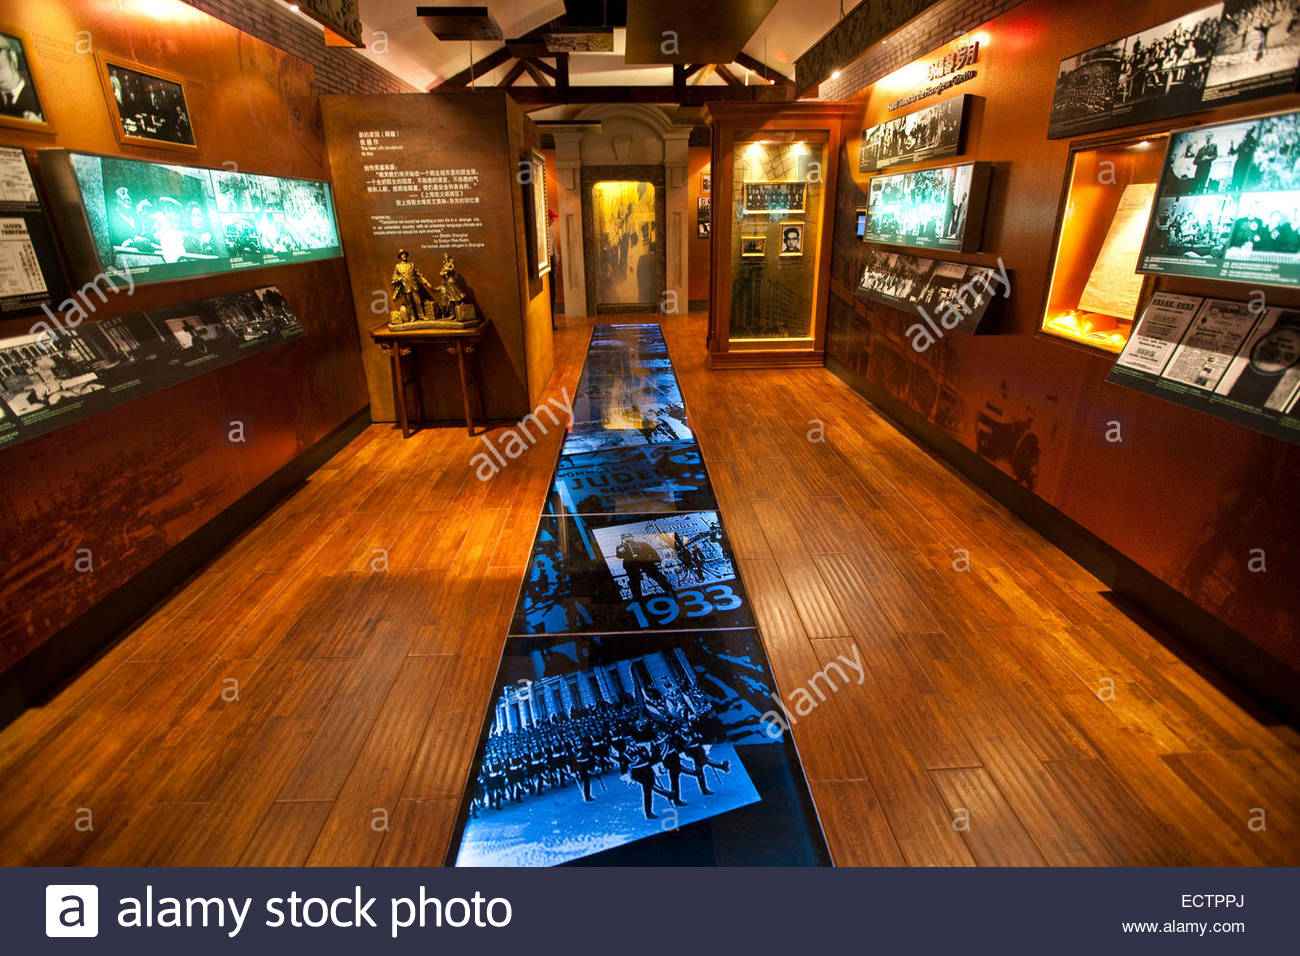 Shanghai, The Jewish refugee museum. - Stock Image